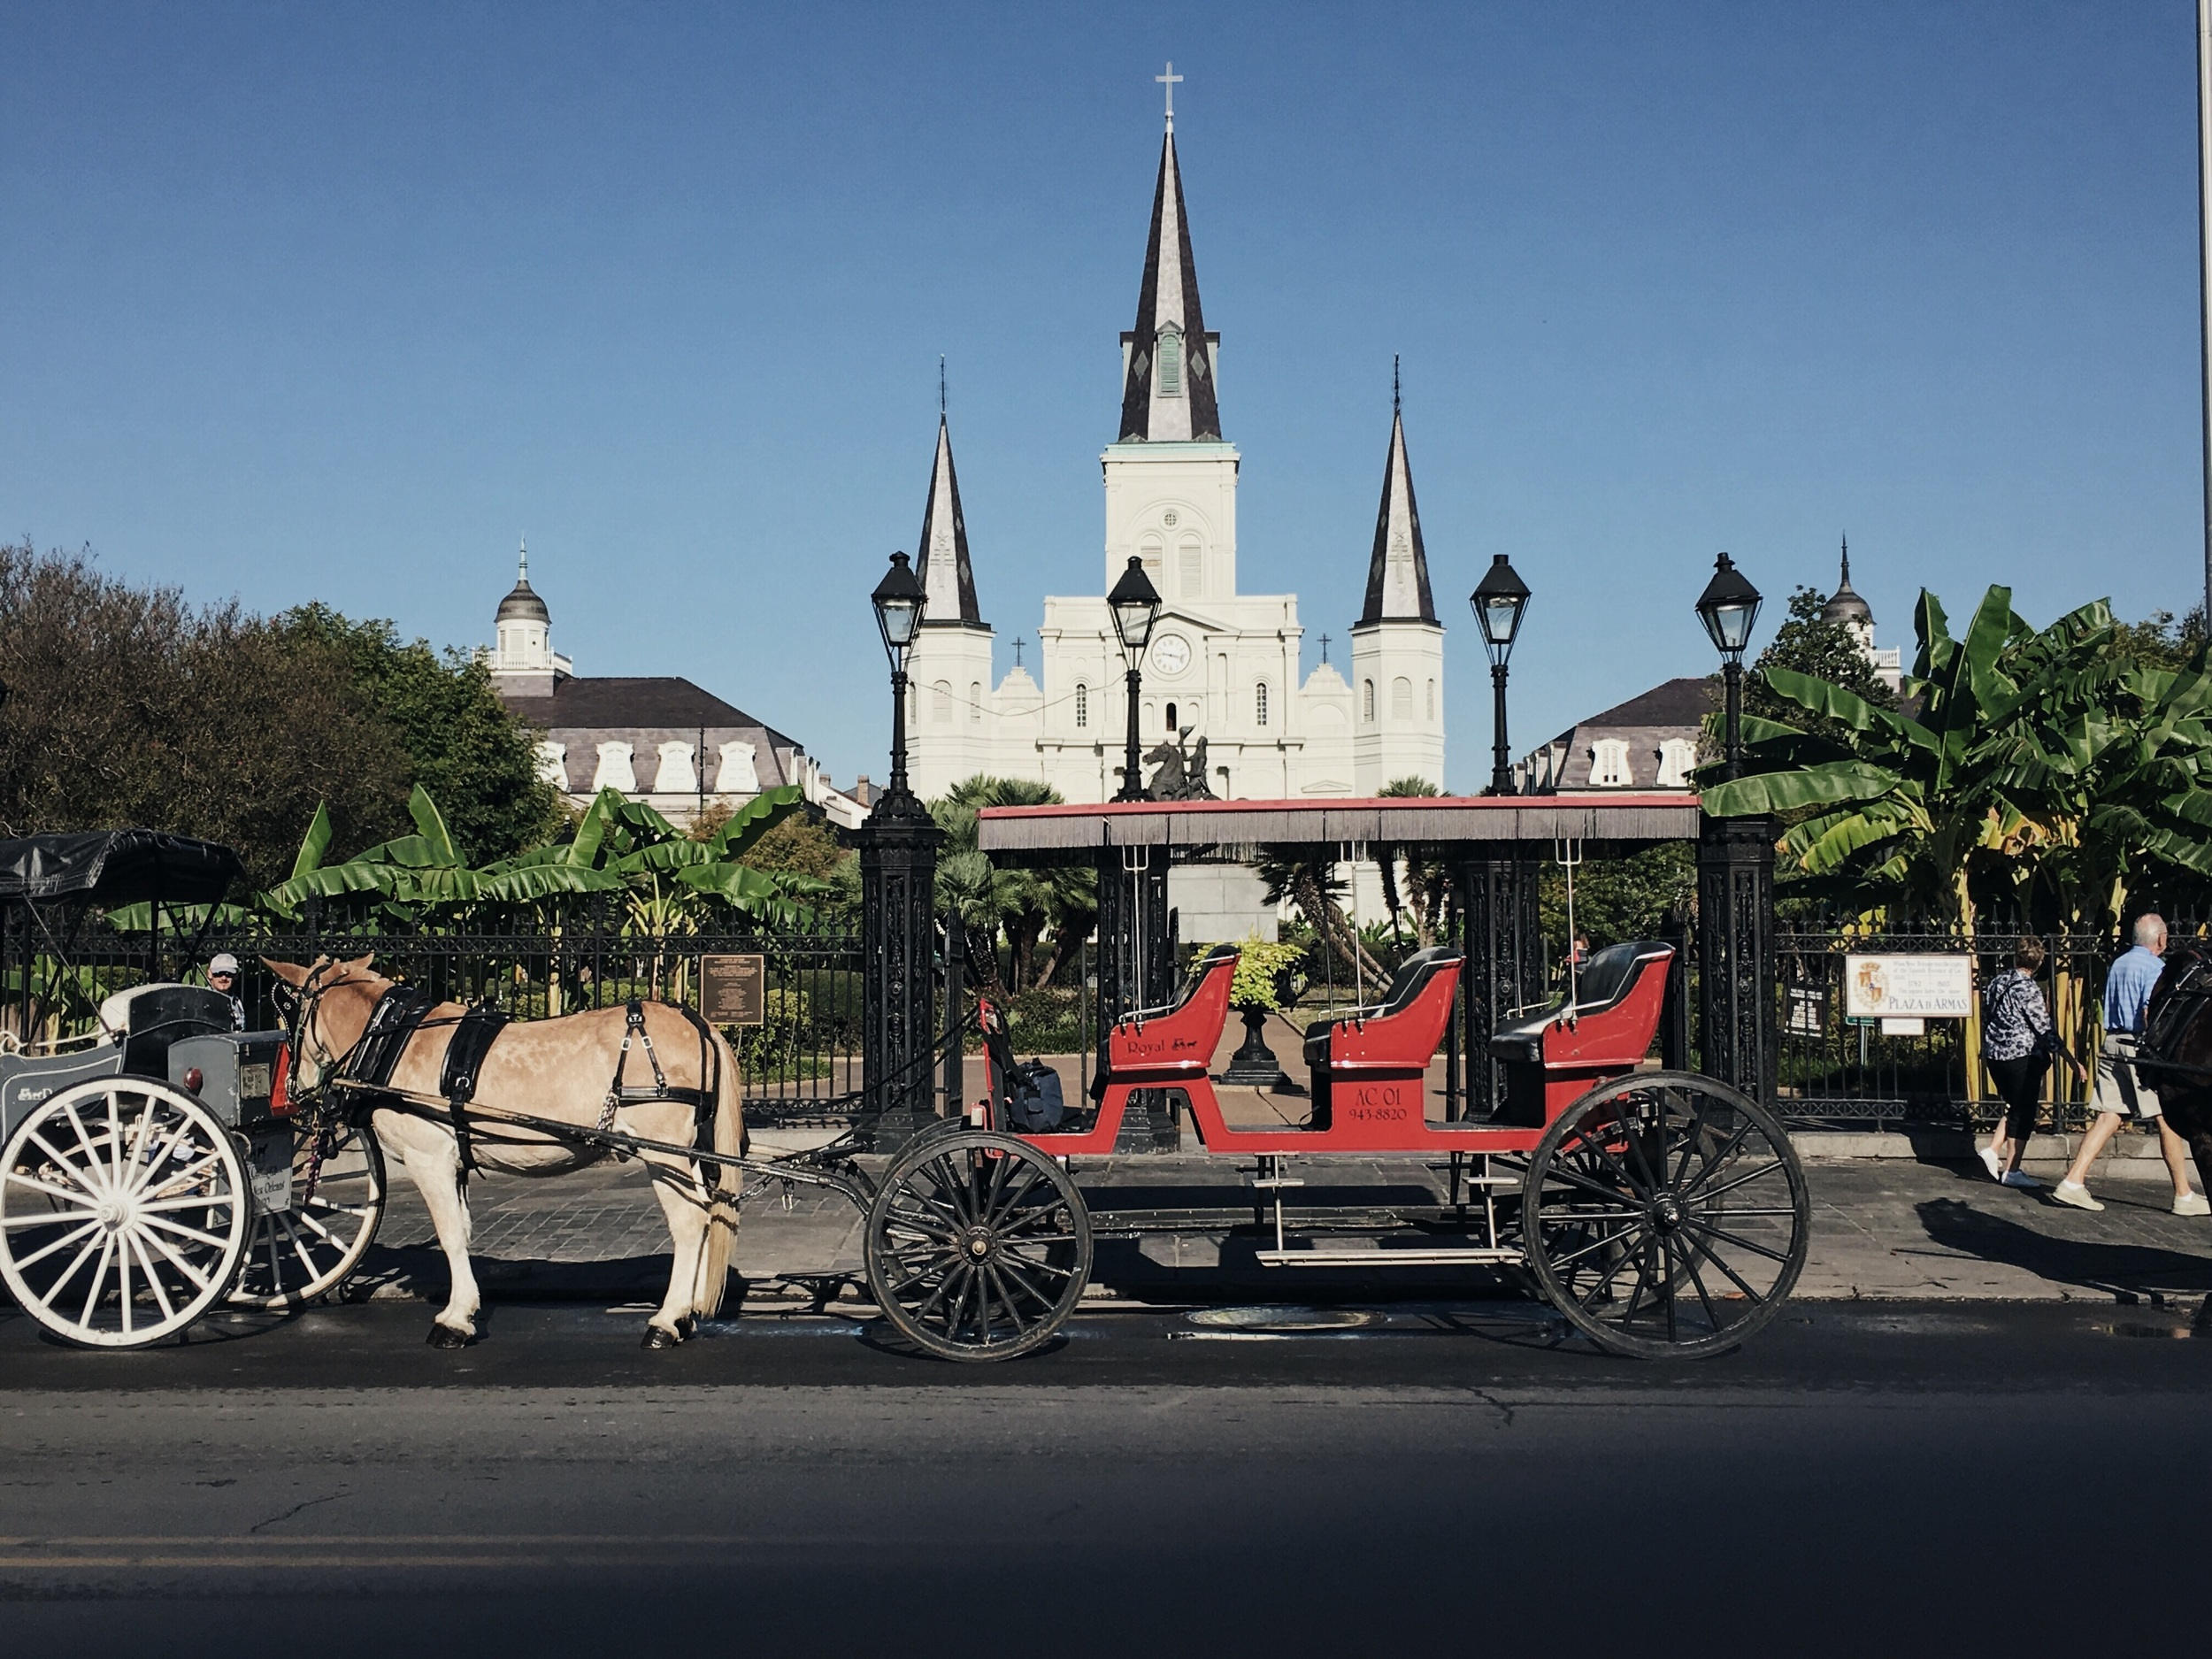 St. Louis Cathedral  is one of the oldest Catholic church in the country. Tourists can also jump on the horse carriage and sight-see around the area.